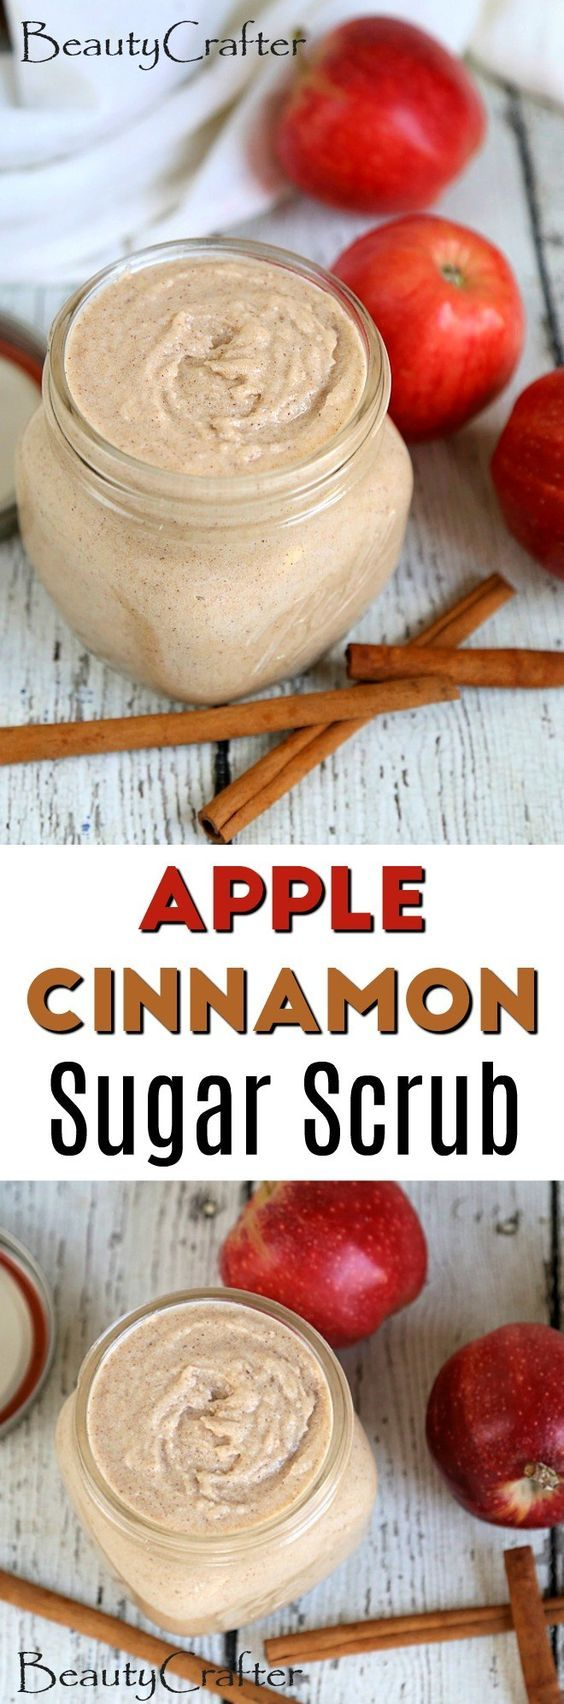 Great DIY Apple Cinnamon Face Scrub